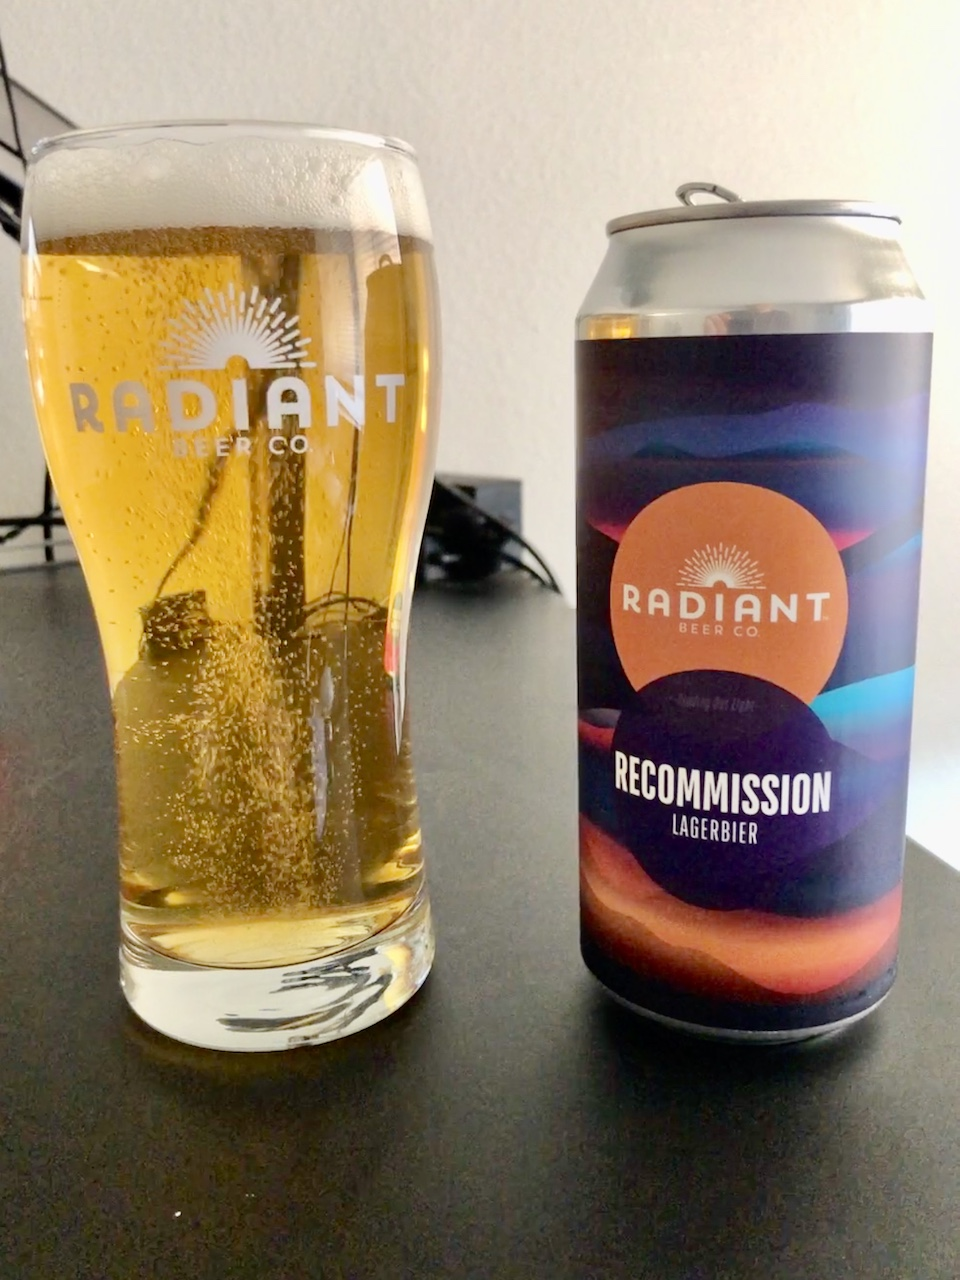 Radiant Beer Co Recommission Lager